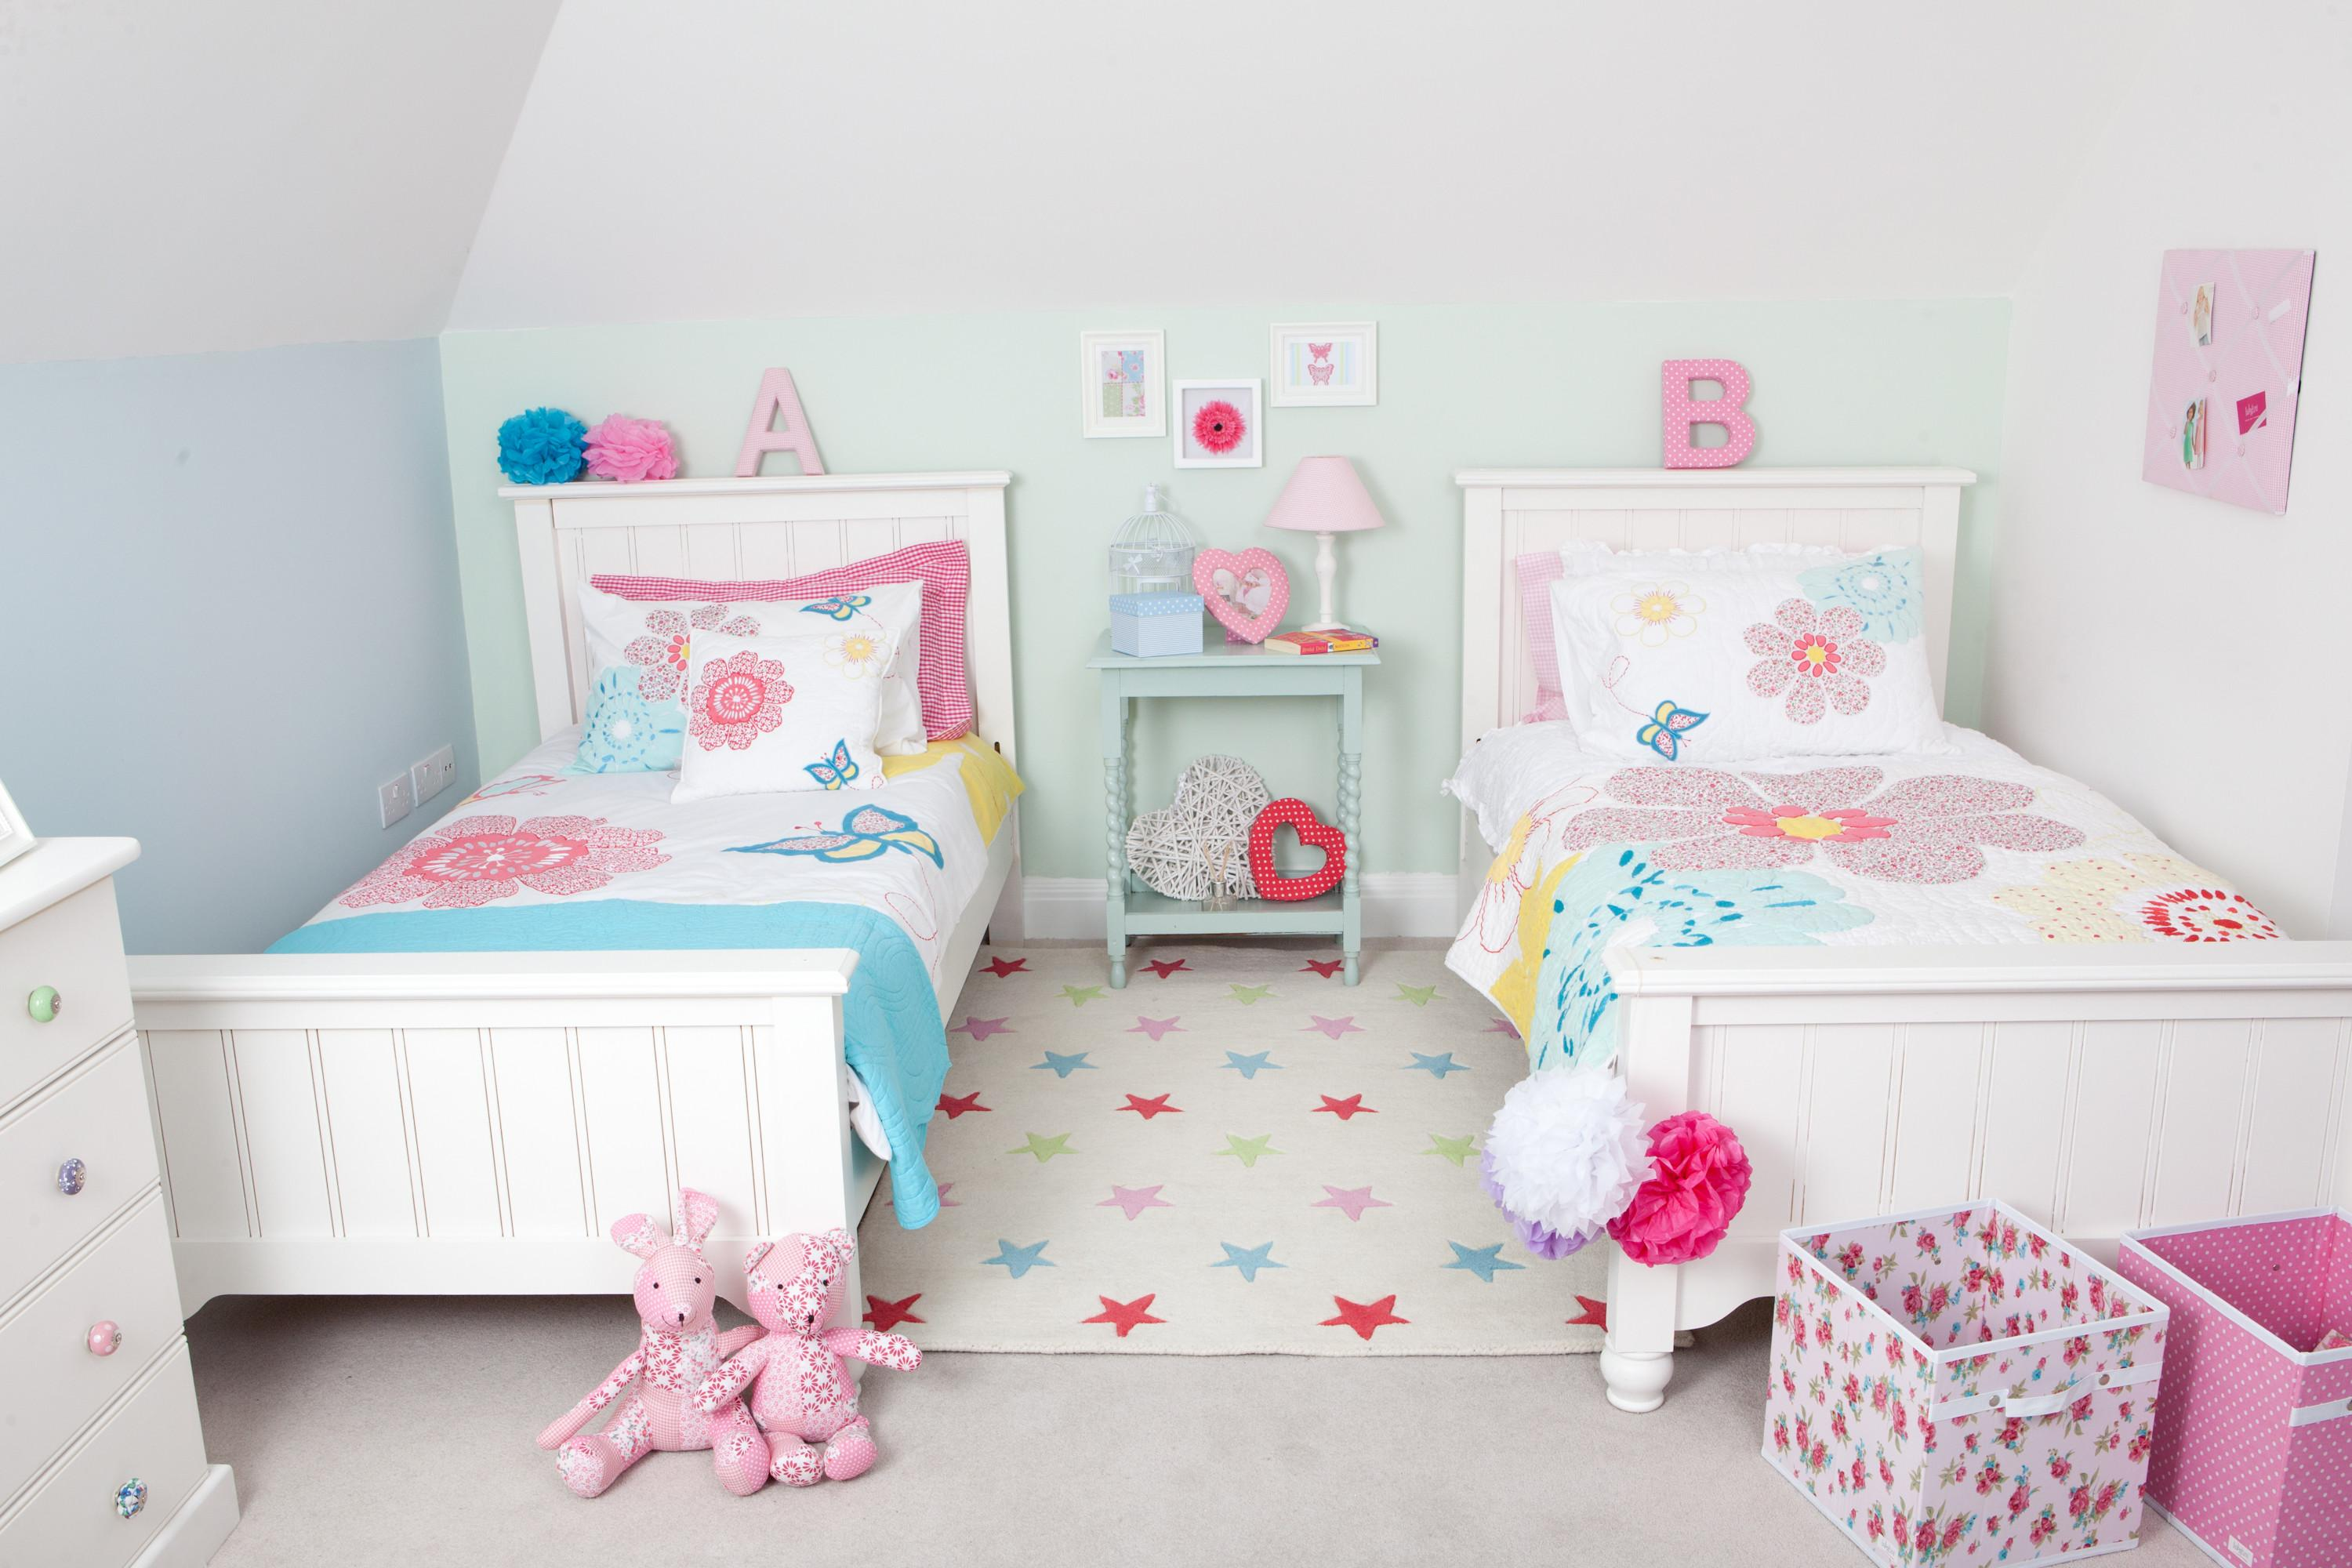 Bedroom Room Kids Toddler Girl Interior Ish